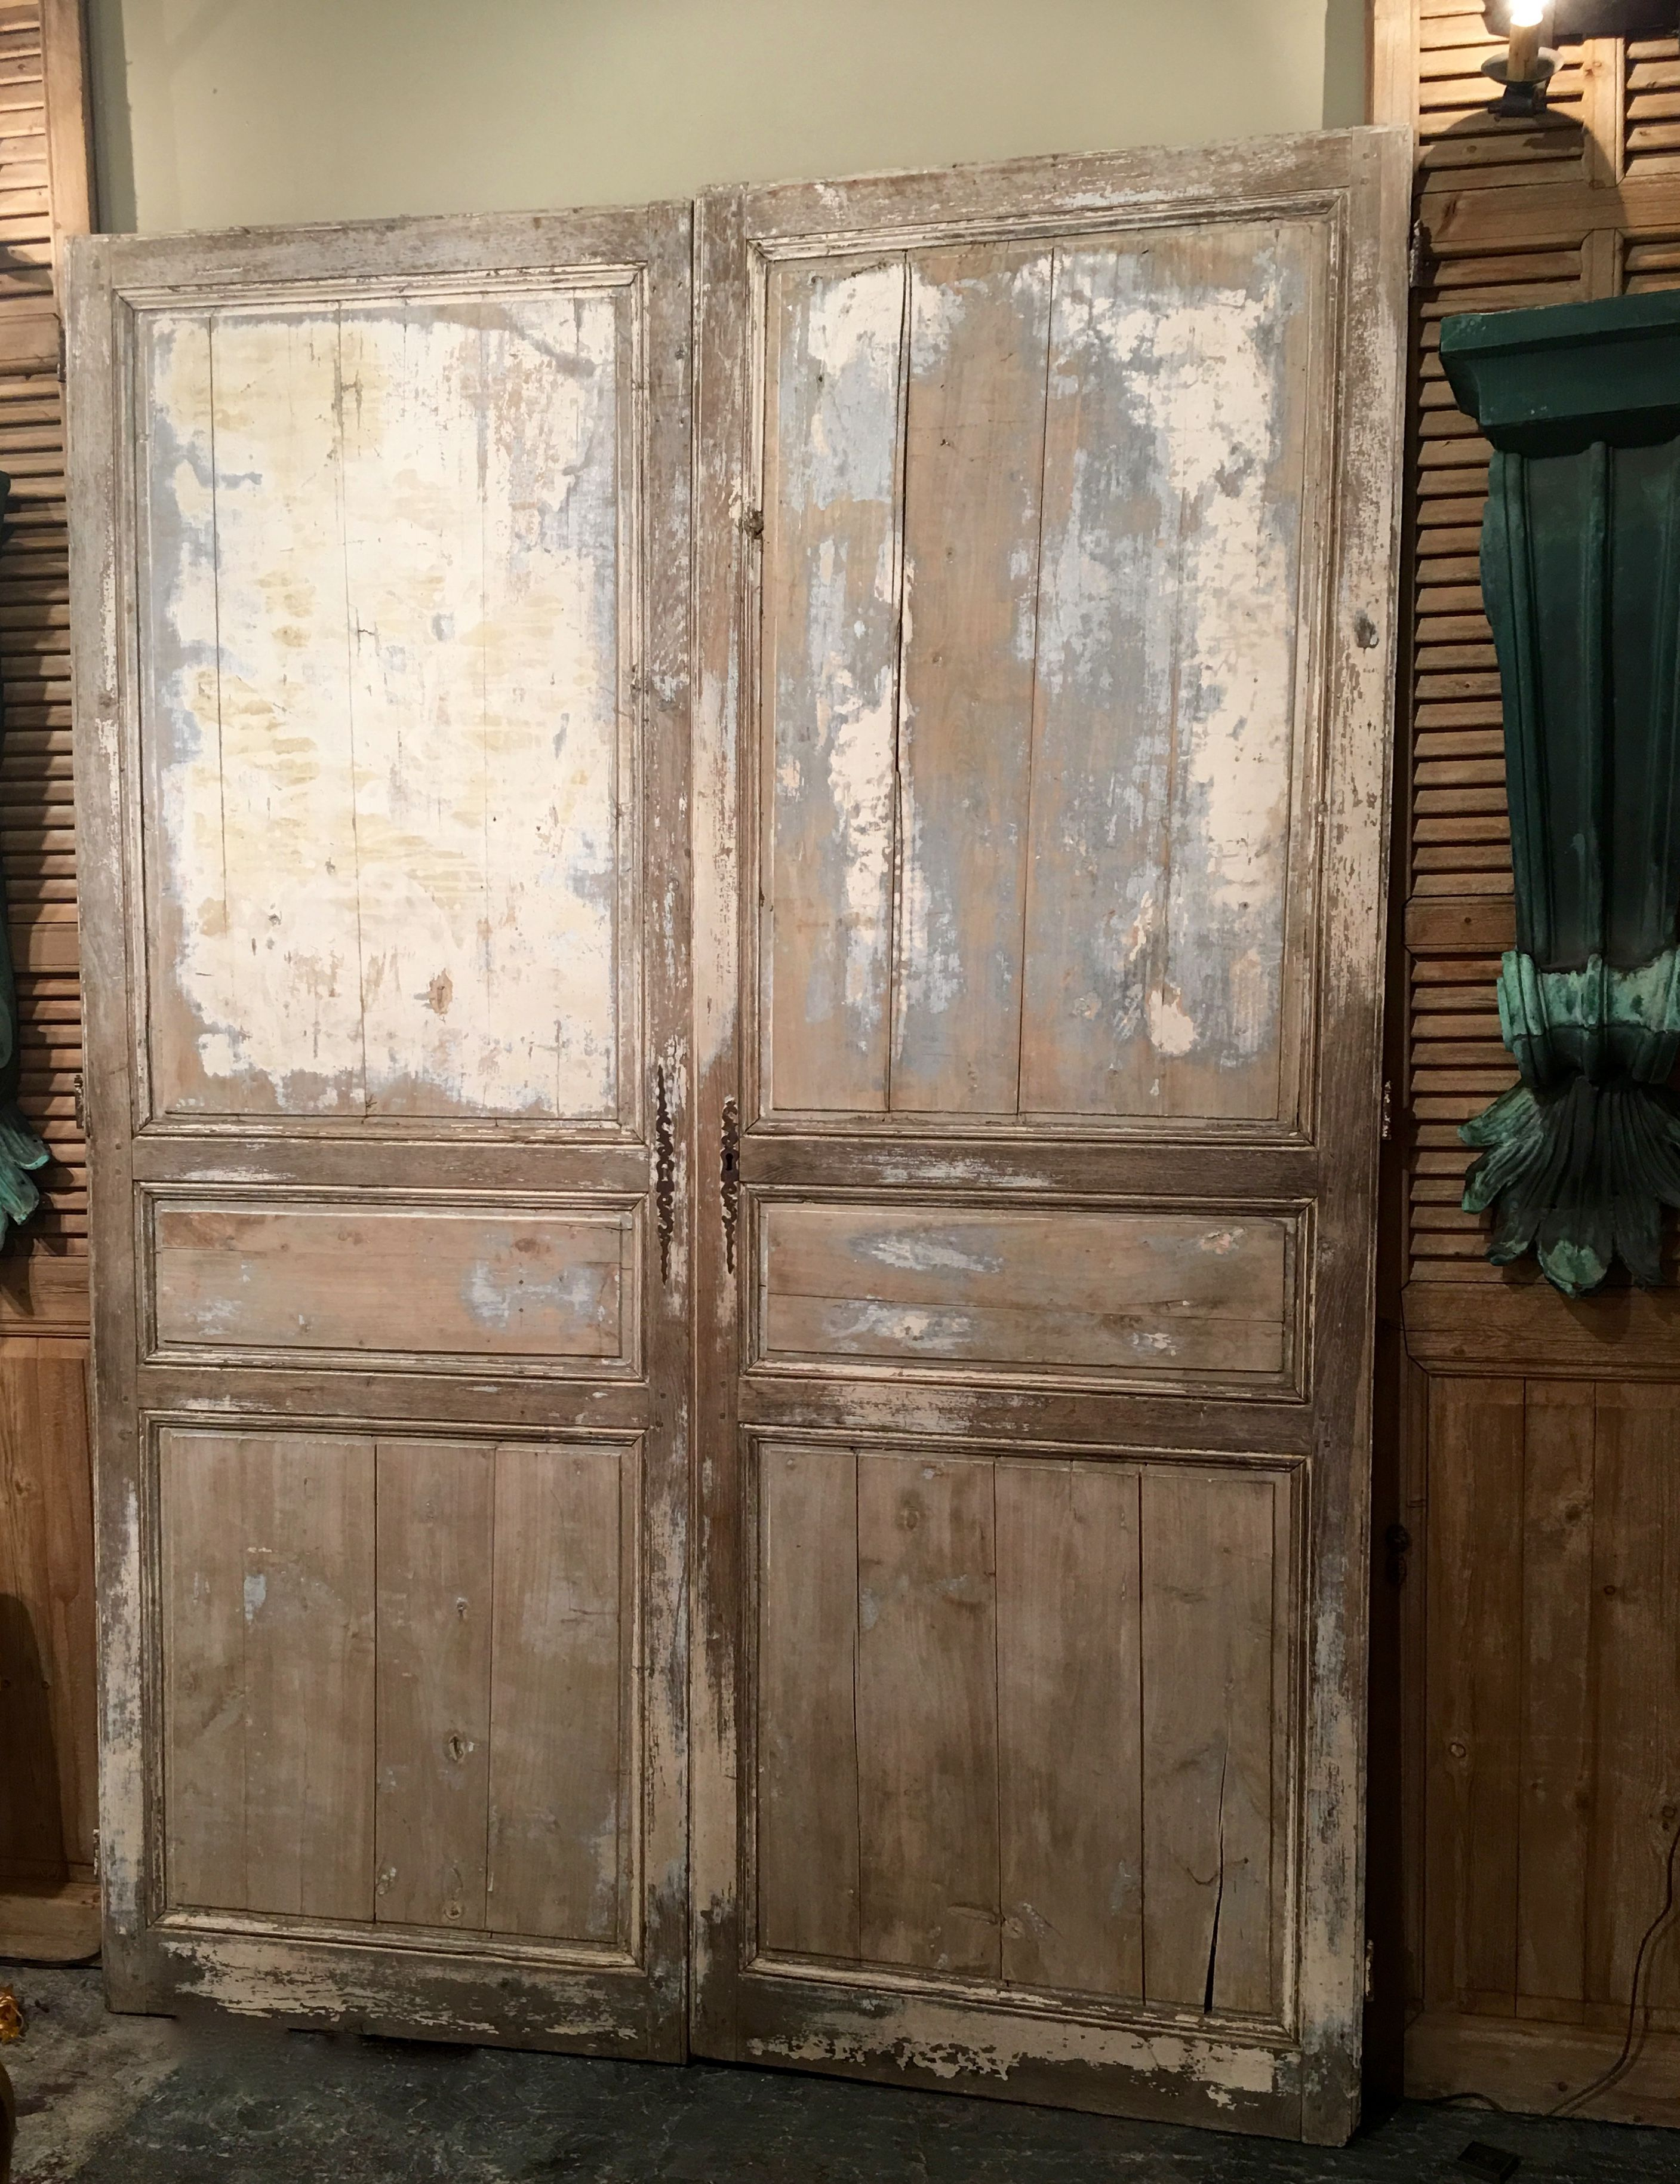 Fabulous Pair Antique French Doors 98 High X 34 Wide Each Clutter Antiques 5015 Lovers Lane Dallas Tx 75209 Architectural Elements Shabby Chic Decor Decor